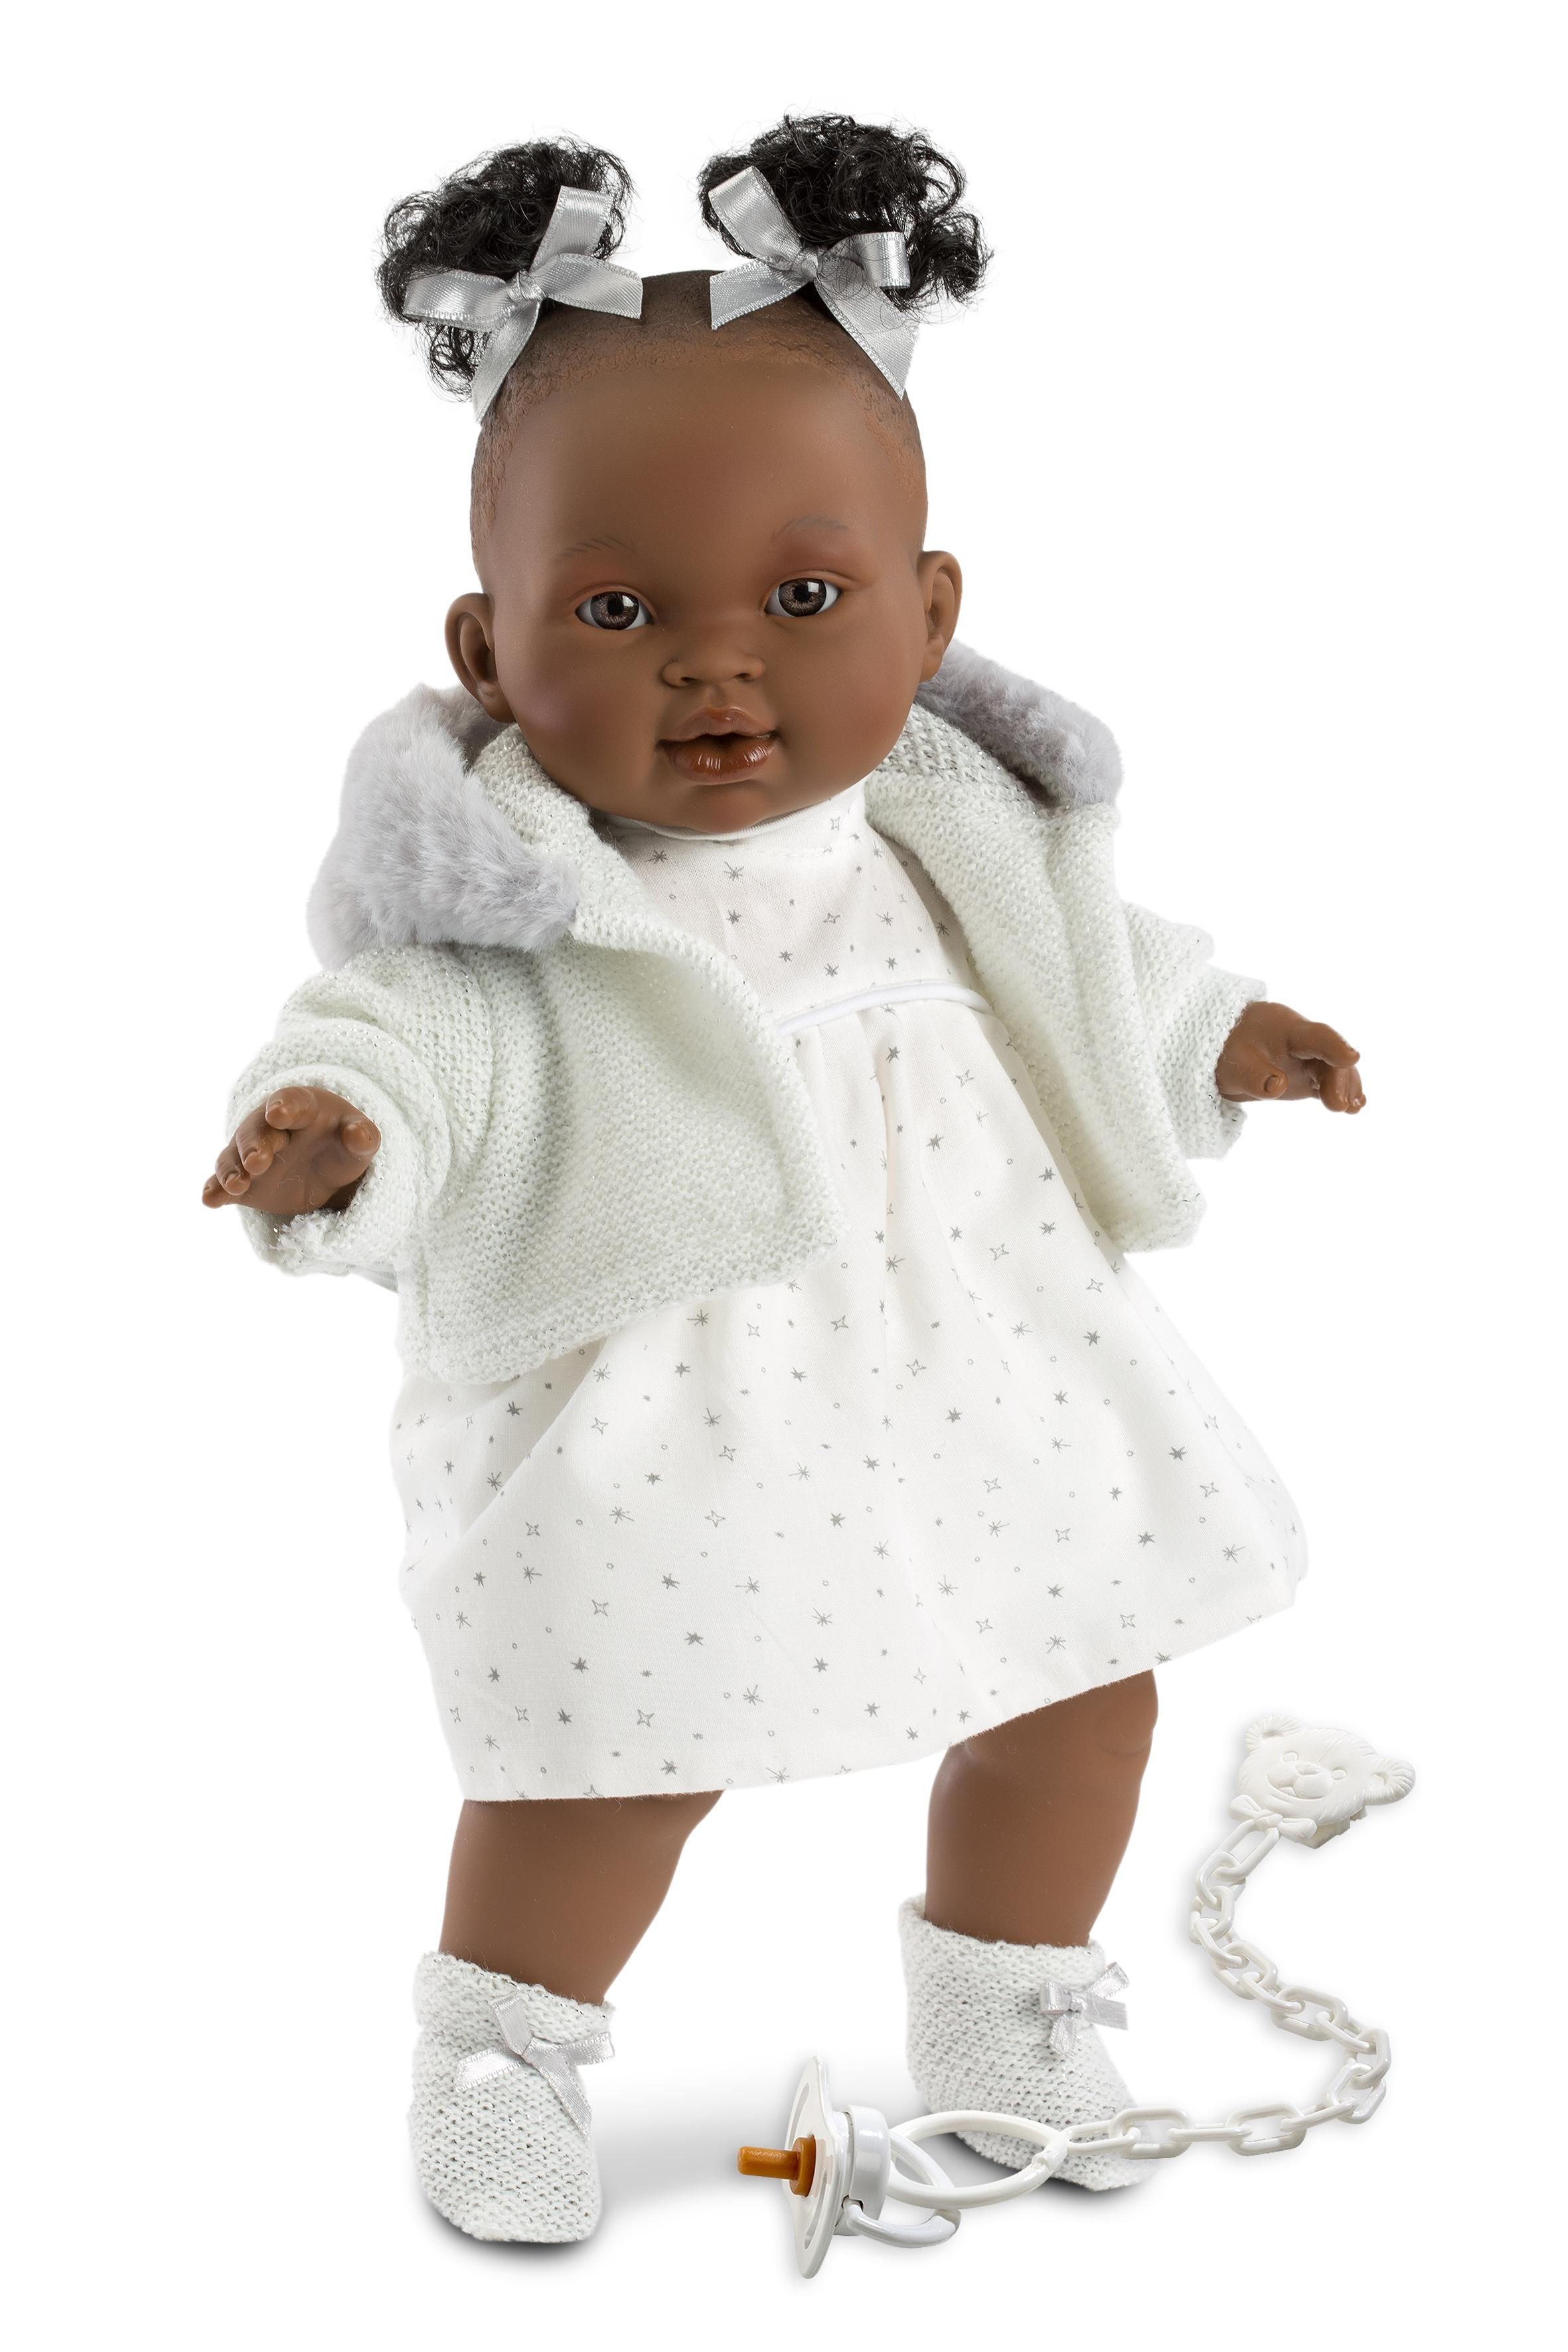 black doll in white spotty outfit